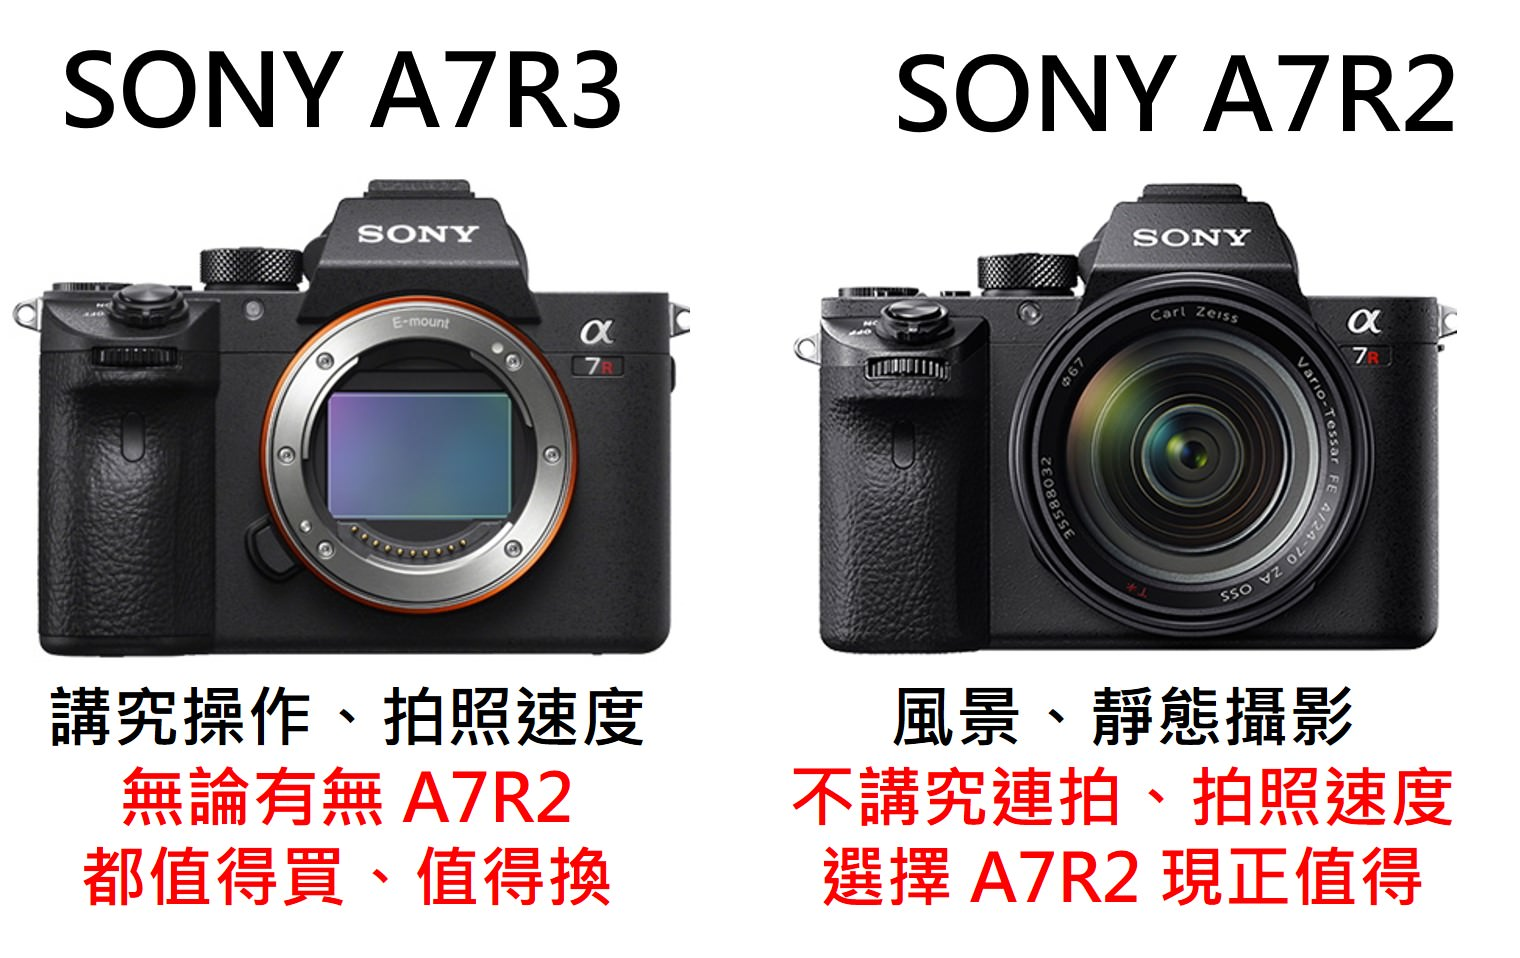 A7R2 A7R3 比較